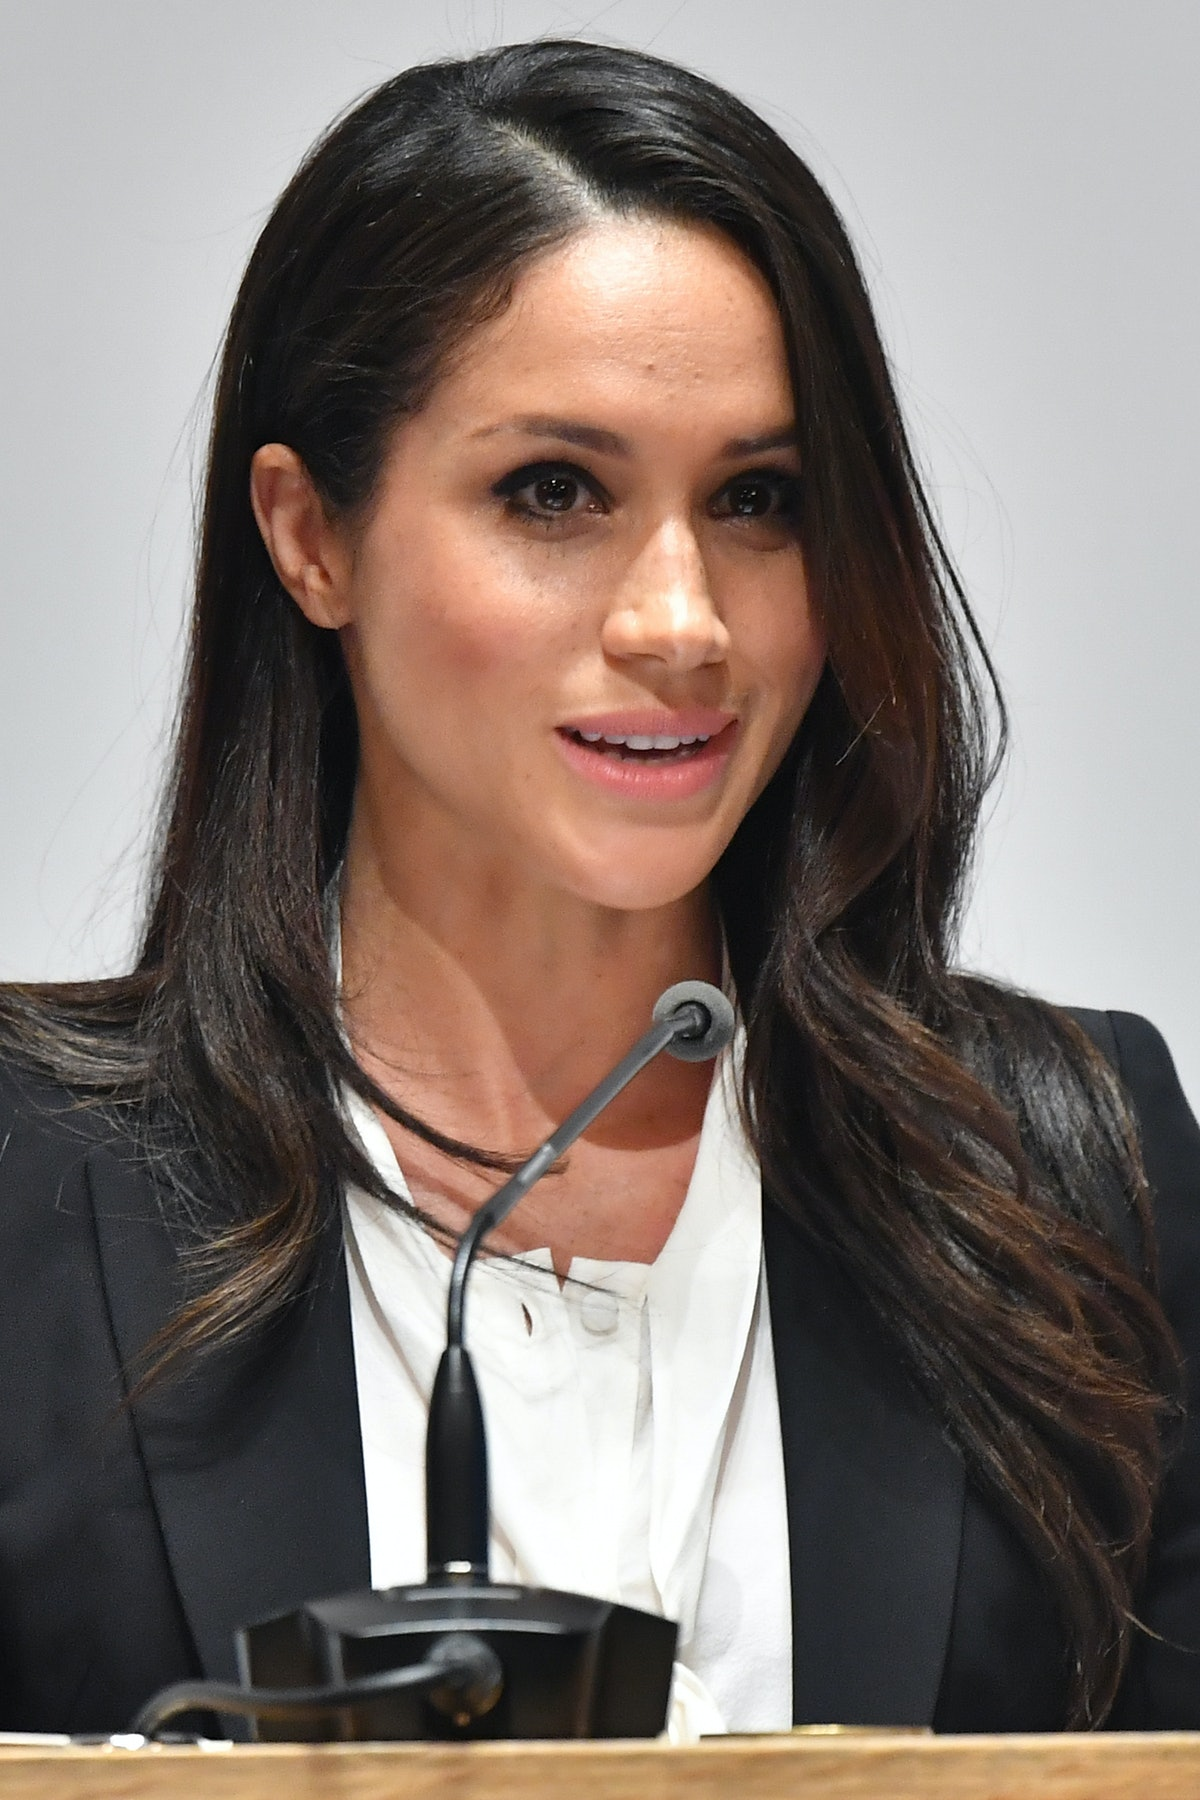 Meghan Markle Nails Her First-Ever Royal Speech at Tonight's Endeavor Fund Awards